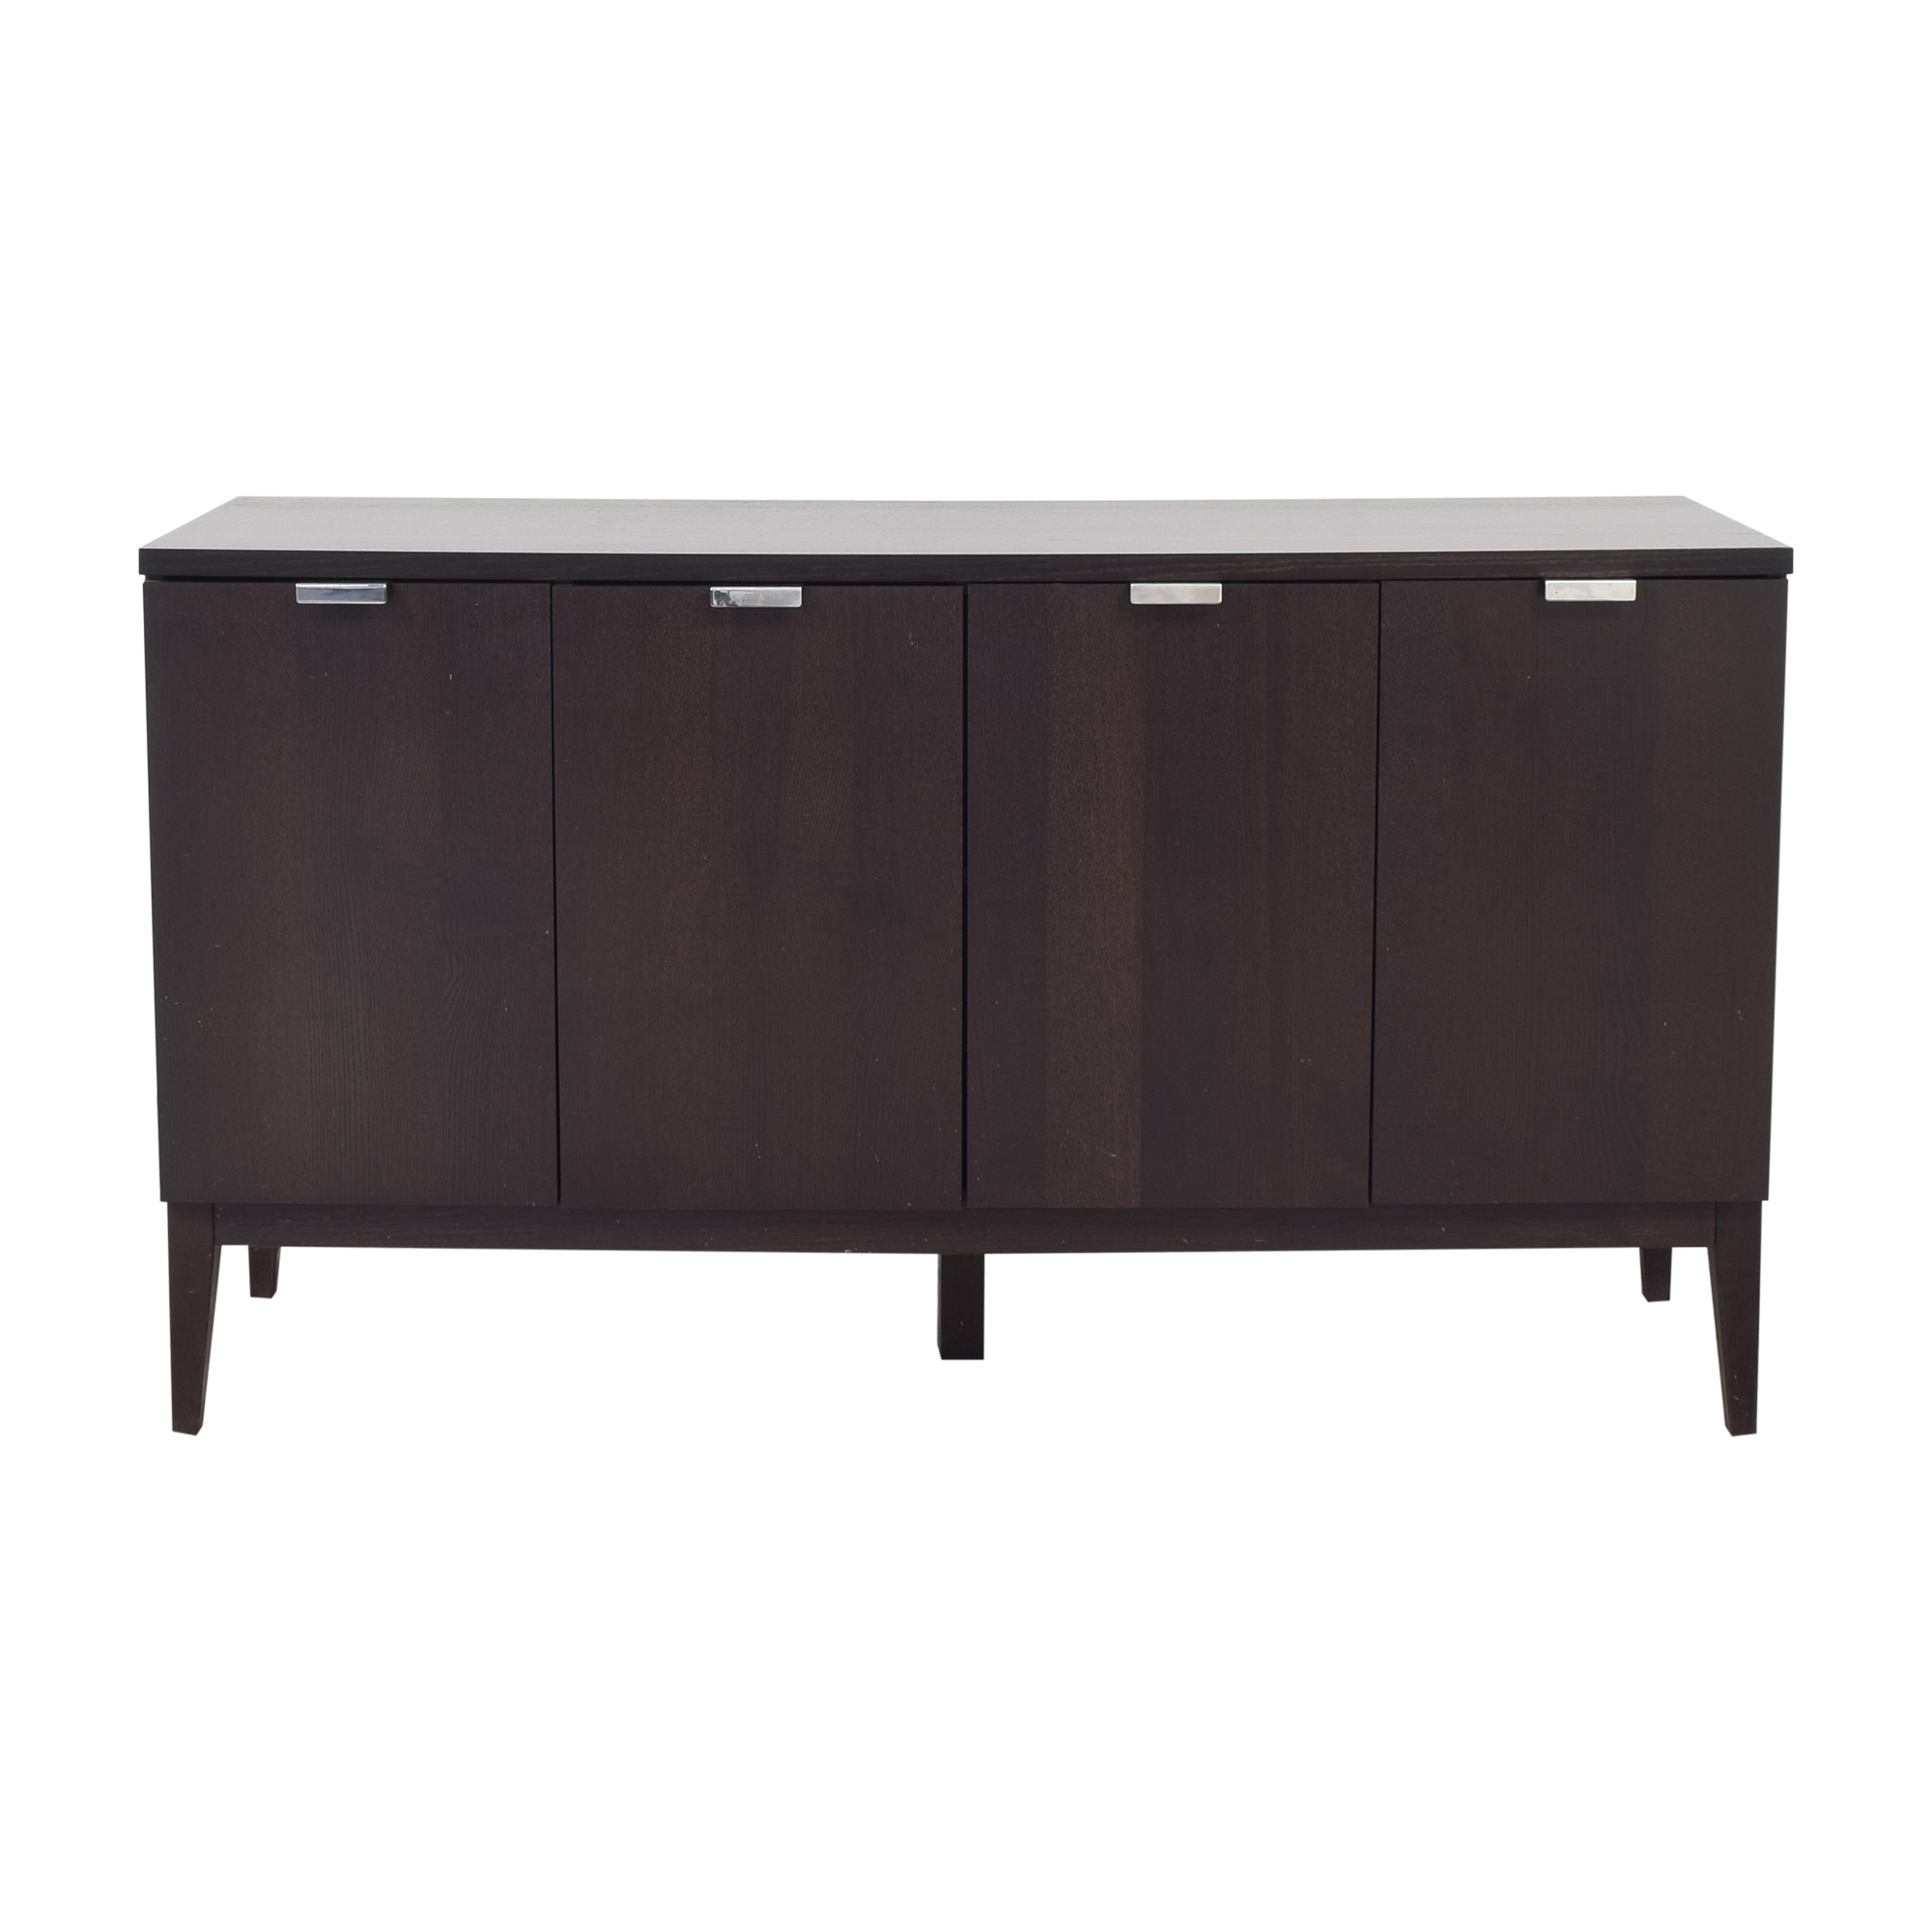 Crate & Barrel Crate & Barrel Buffet Sideboard coupon